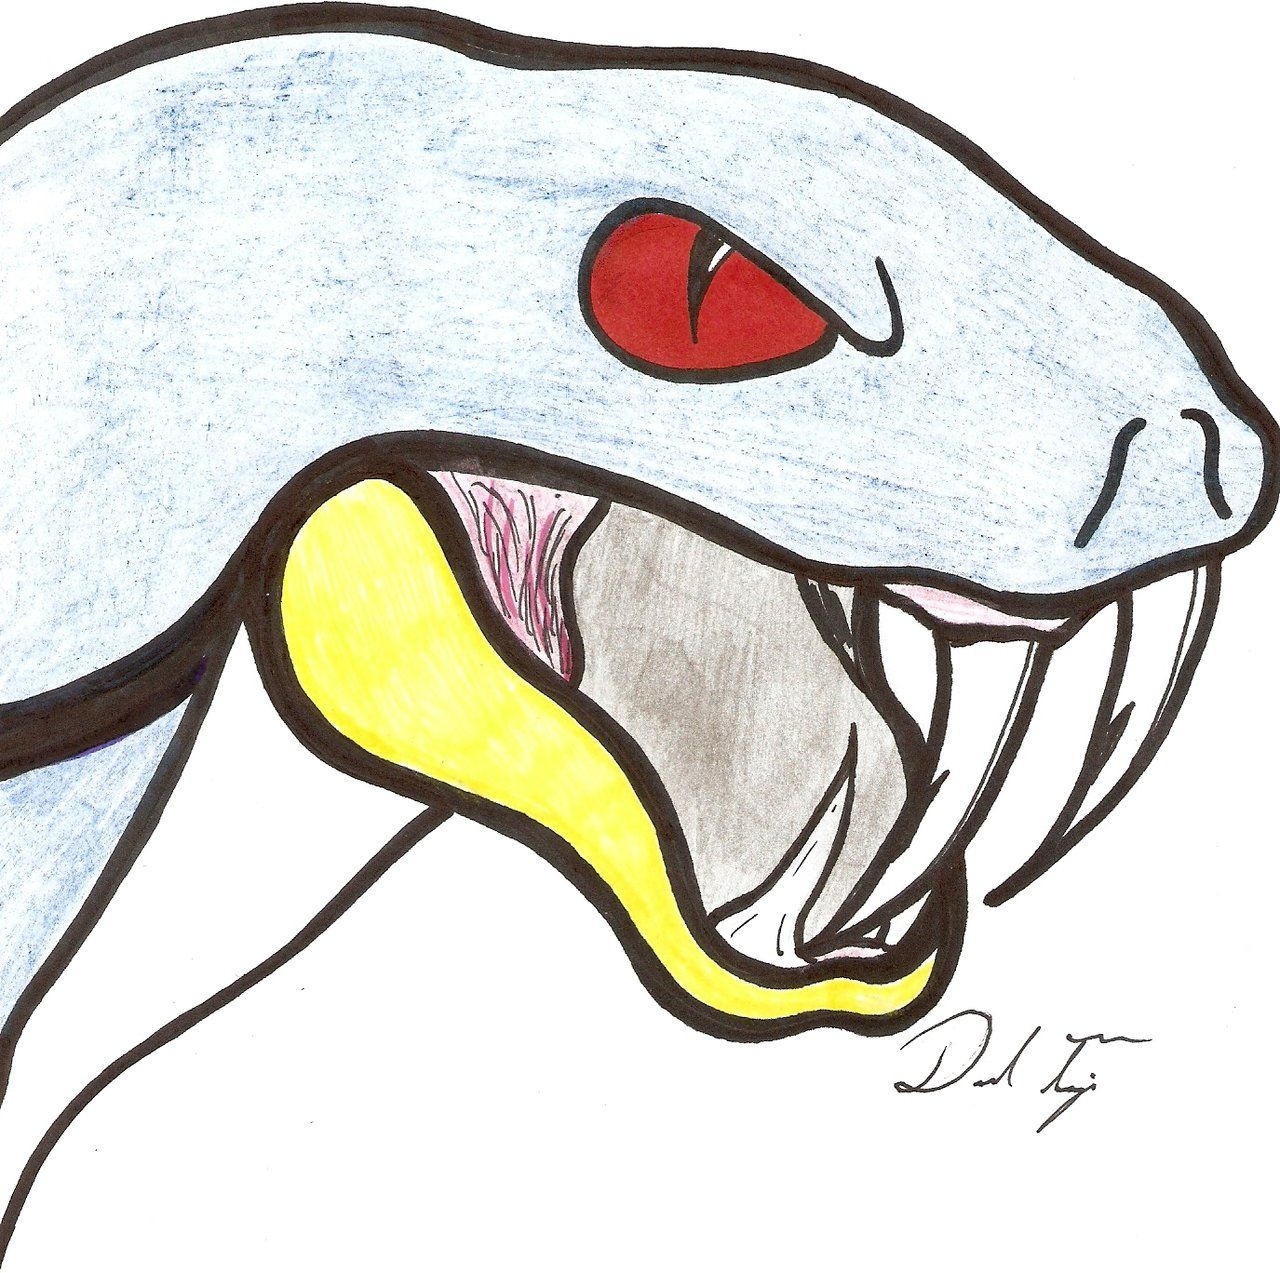 1280x1273 images for gt snake fangs drawing snake fangs drawings, snake